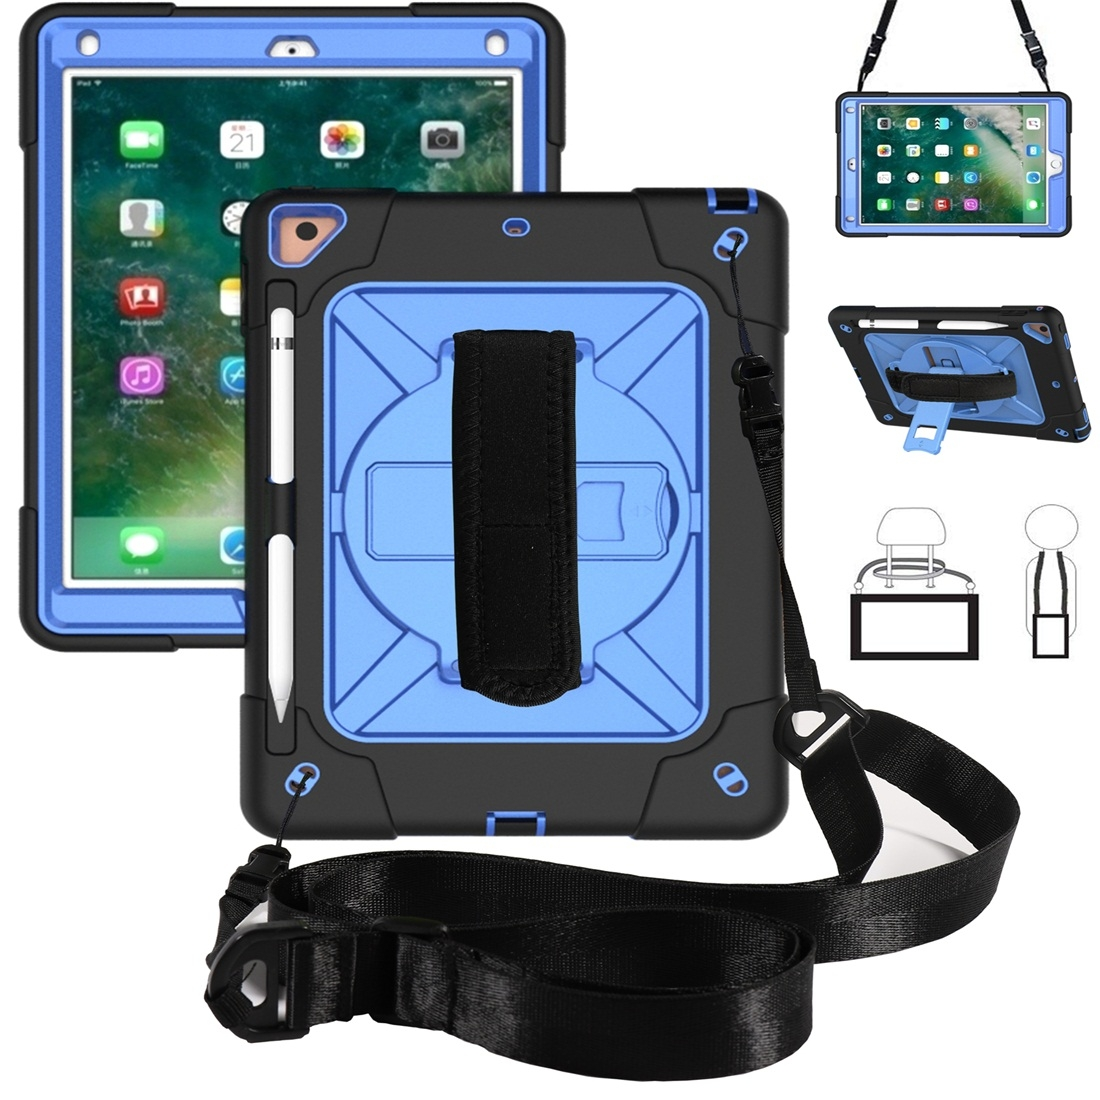 iPad 9.7 Case Contrasting Color Tough Durable Armor Case (Black/Blue)